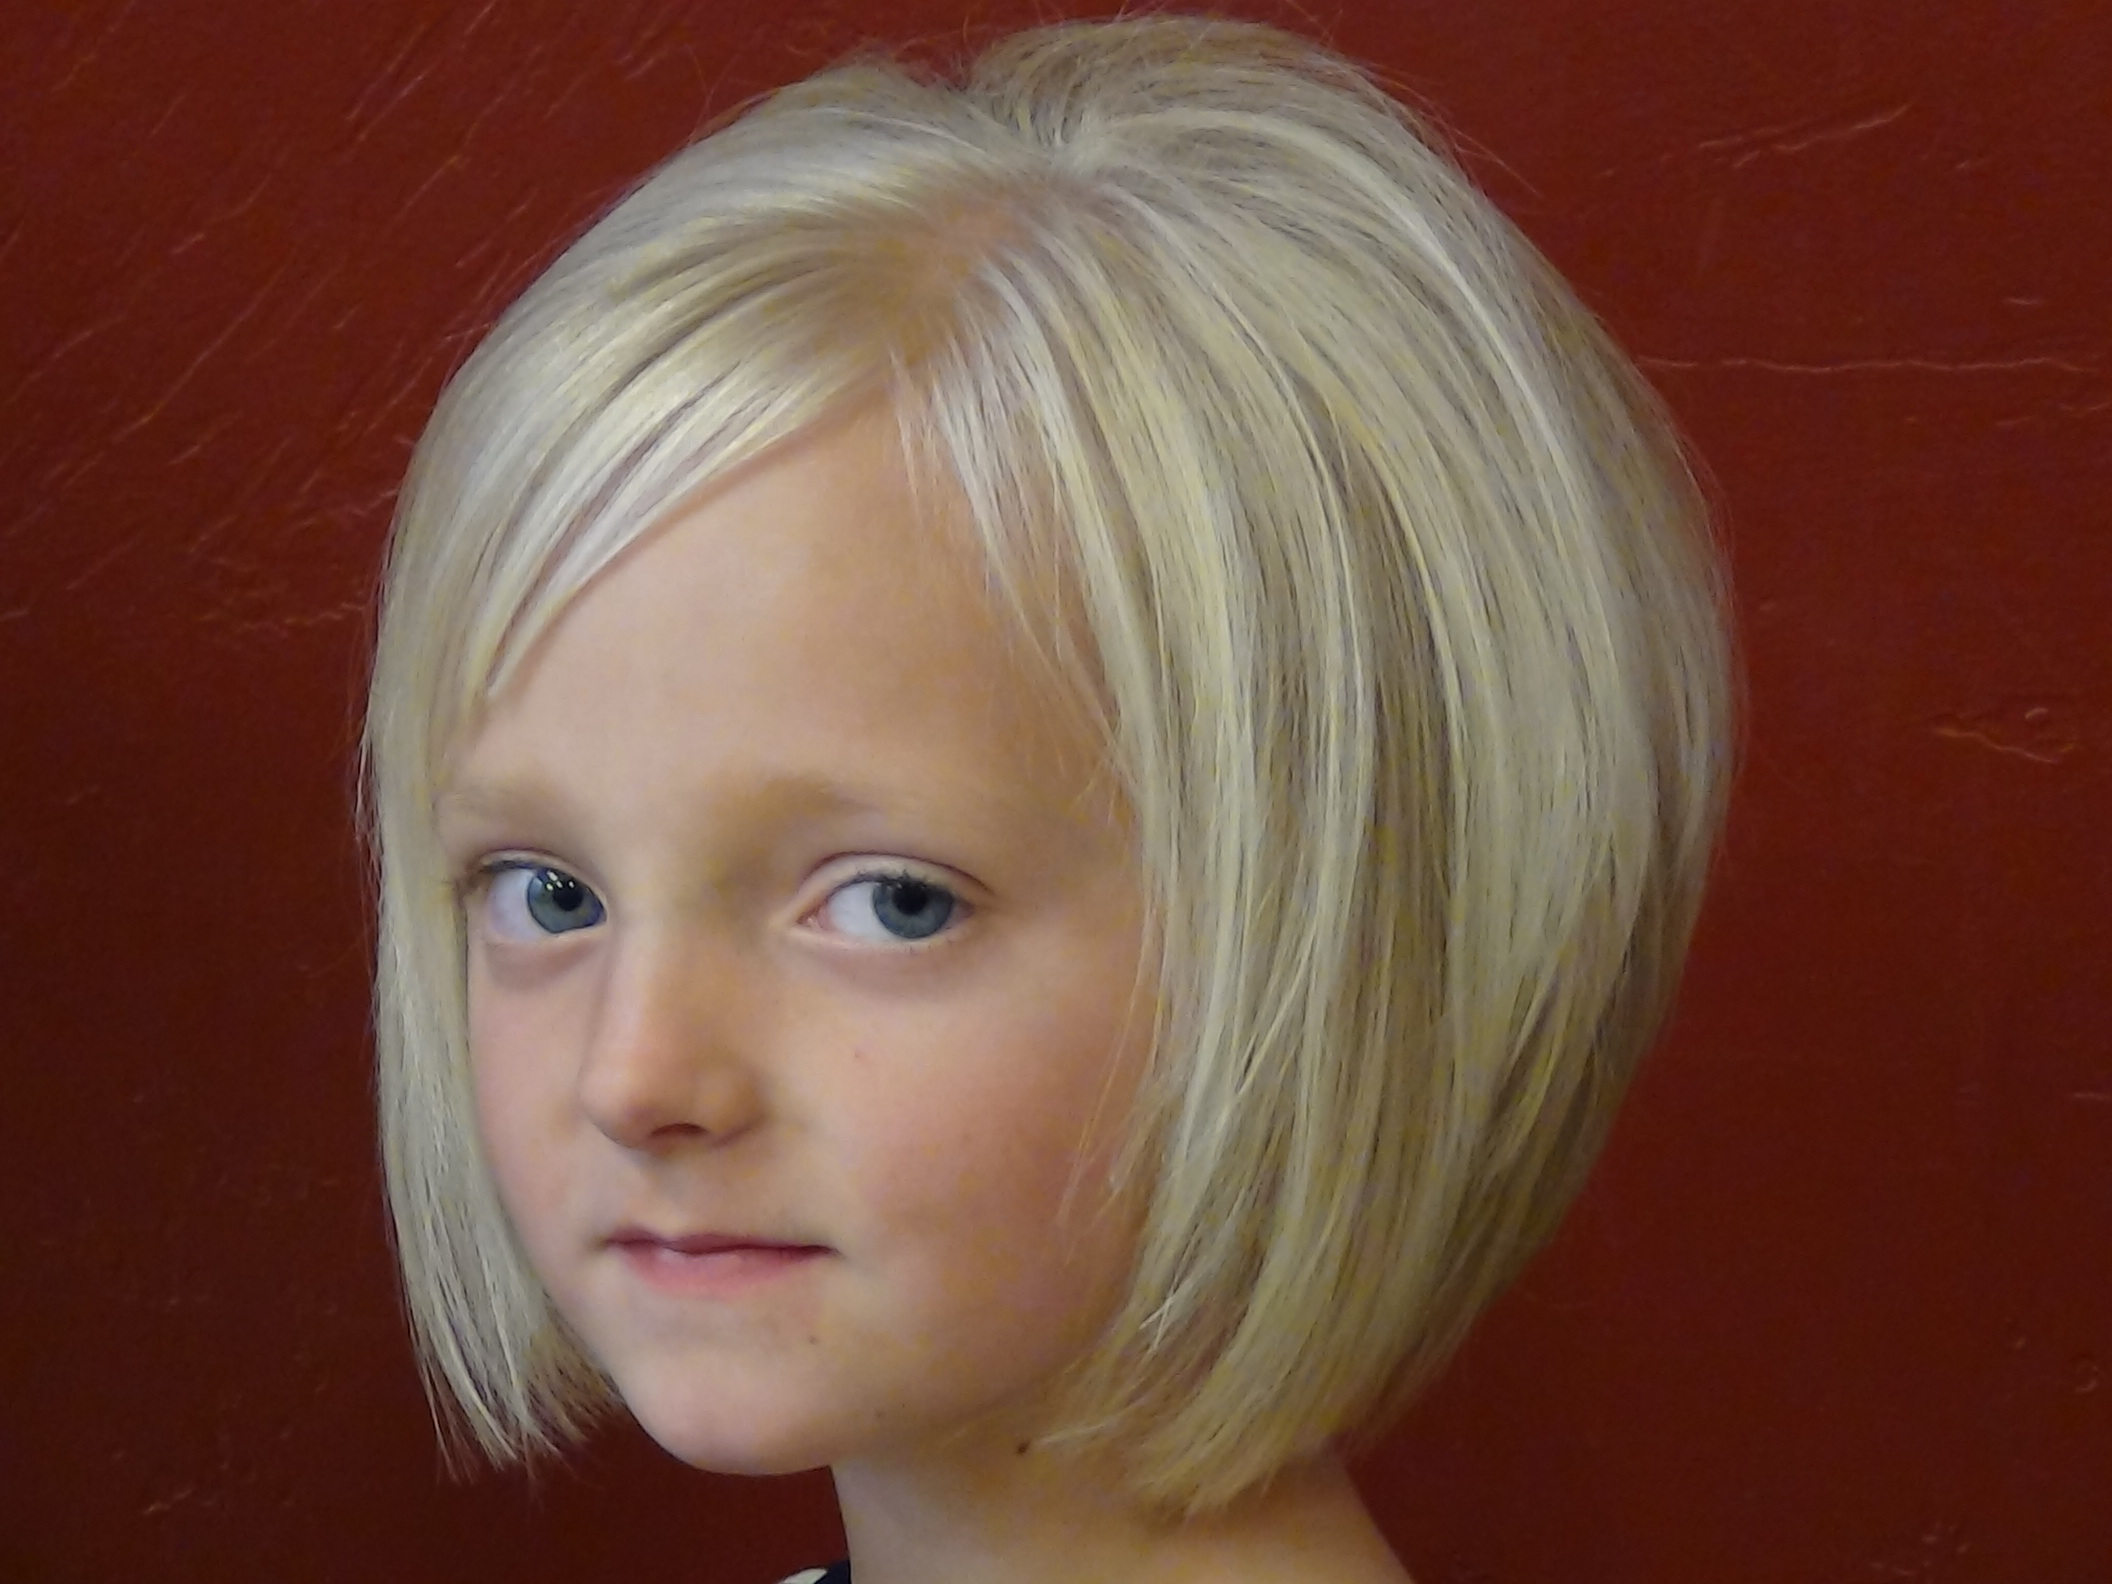 Cute Short Hair Cuts Images | Crazy Gallery